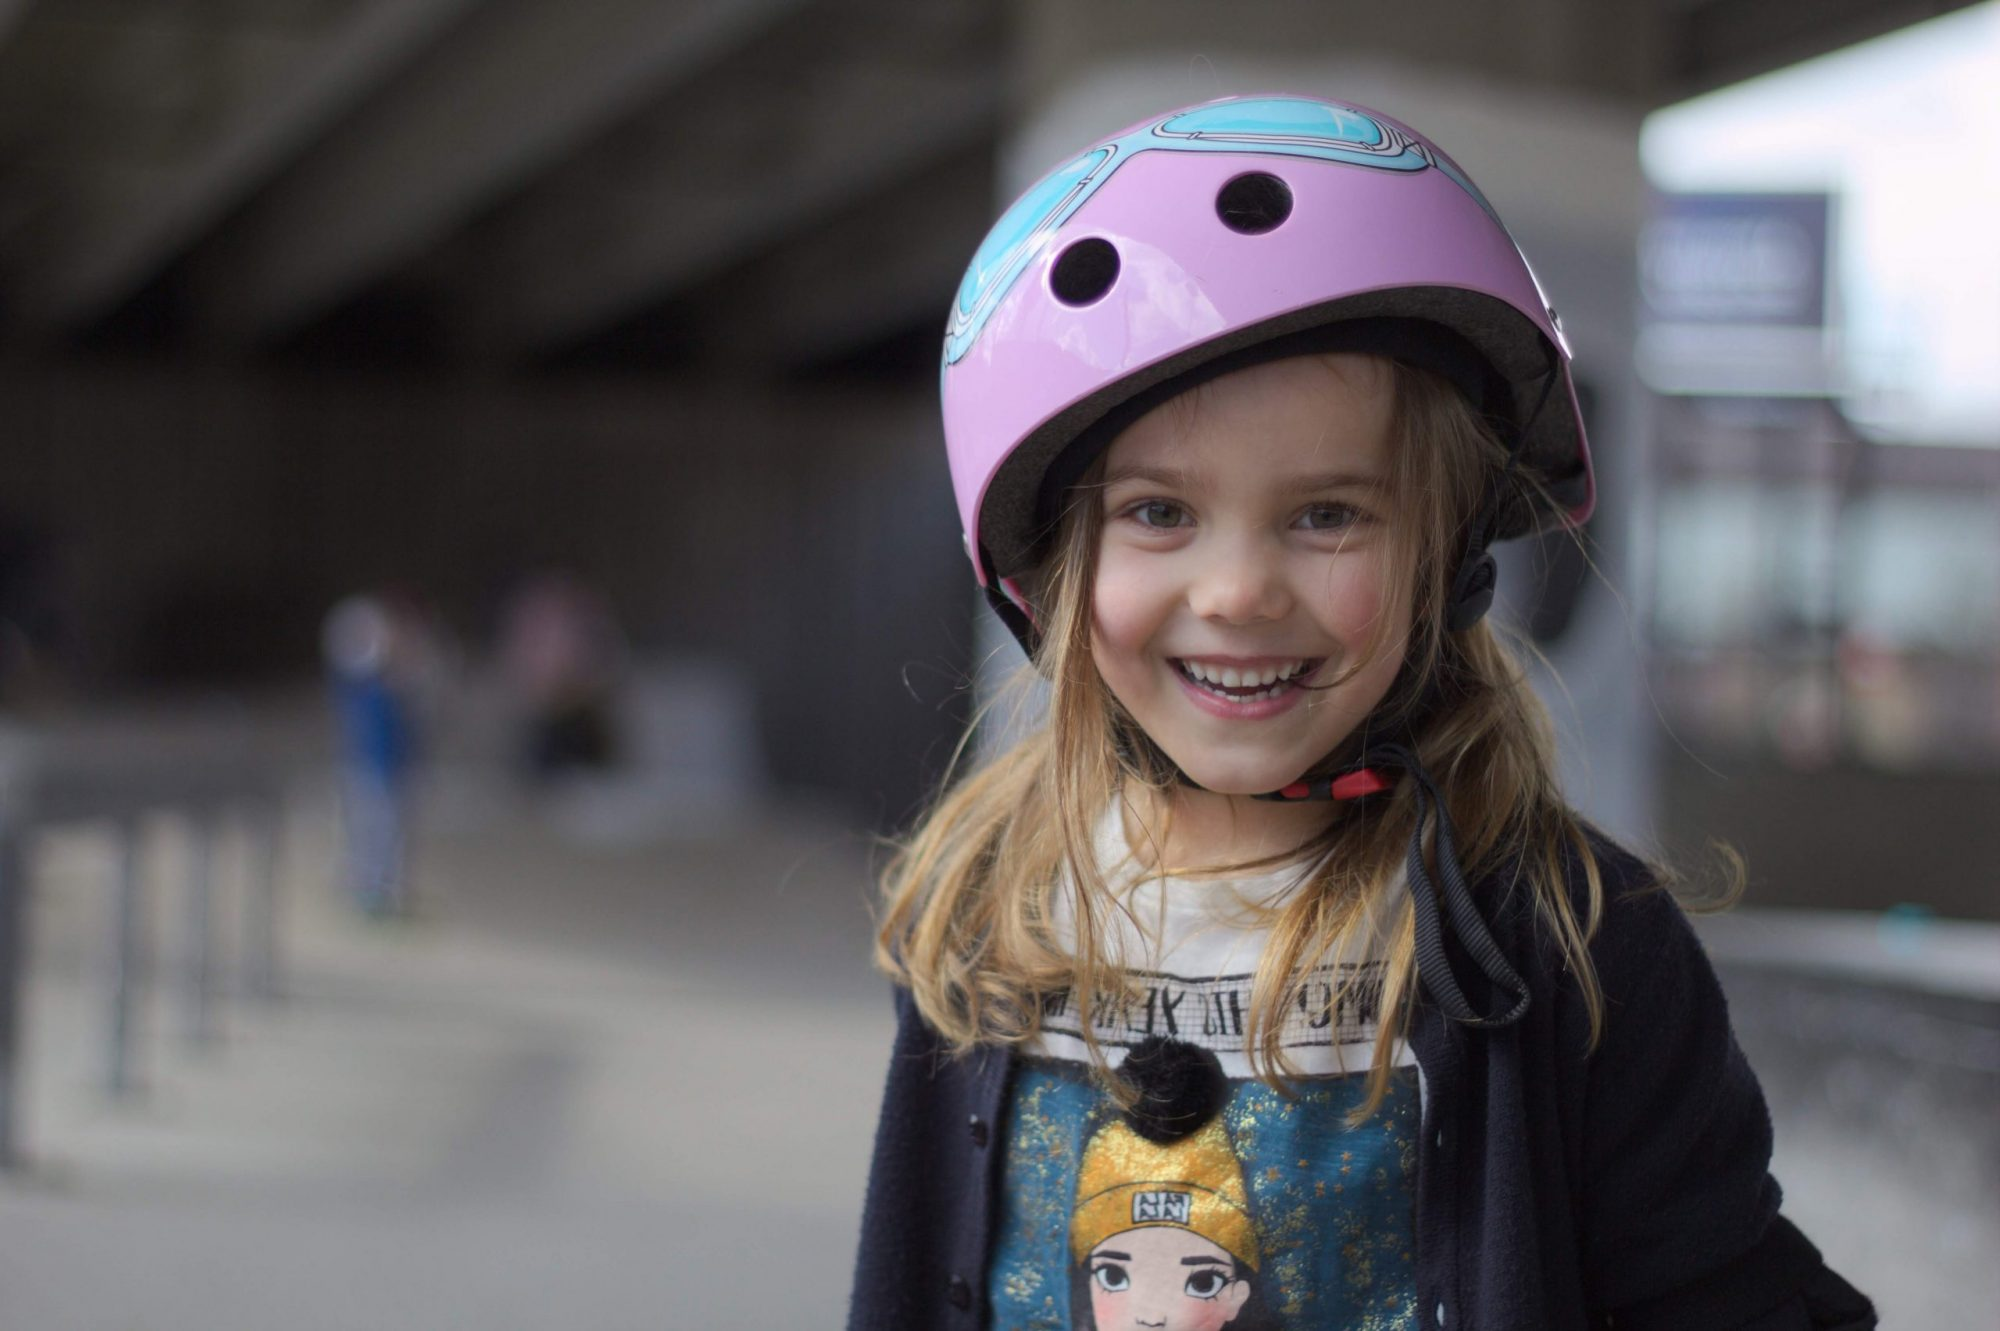 a young girl wearing a skate helmet grinning at the camera